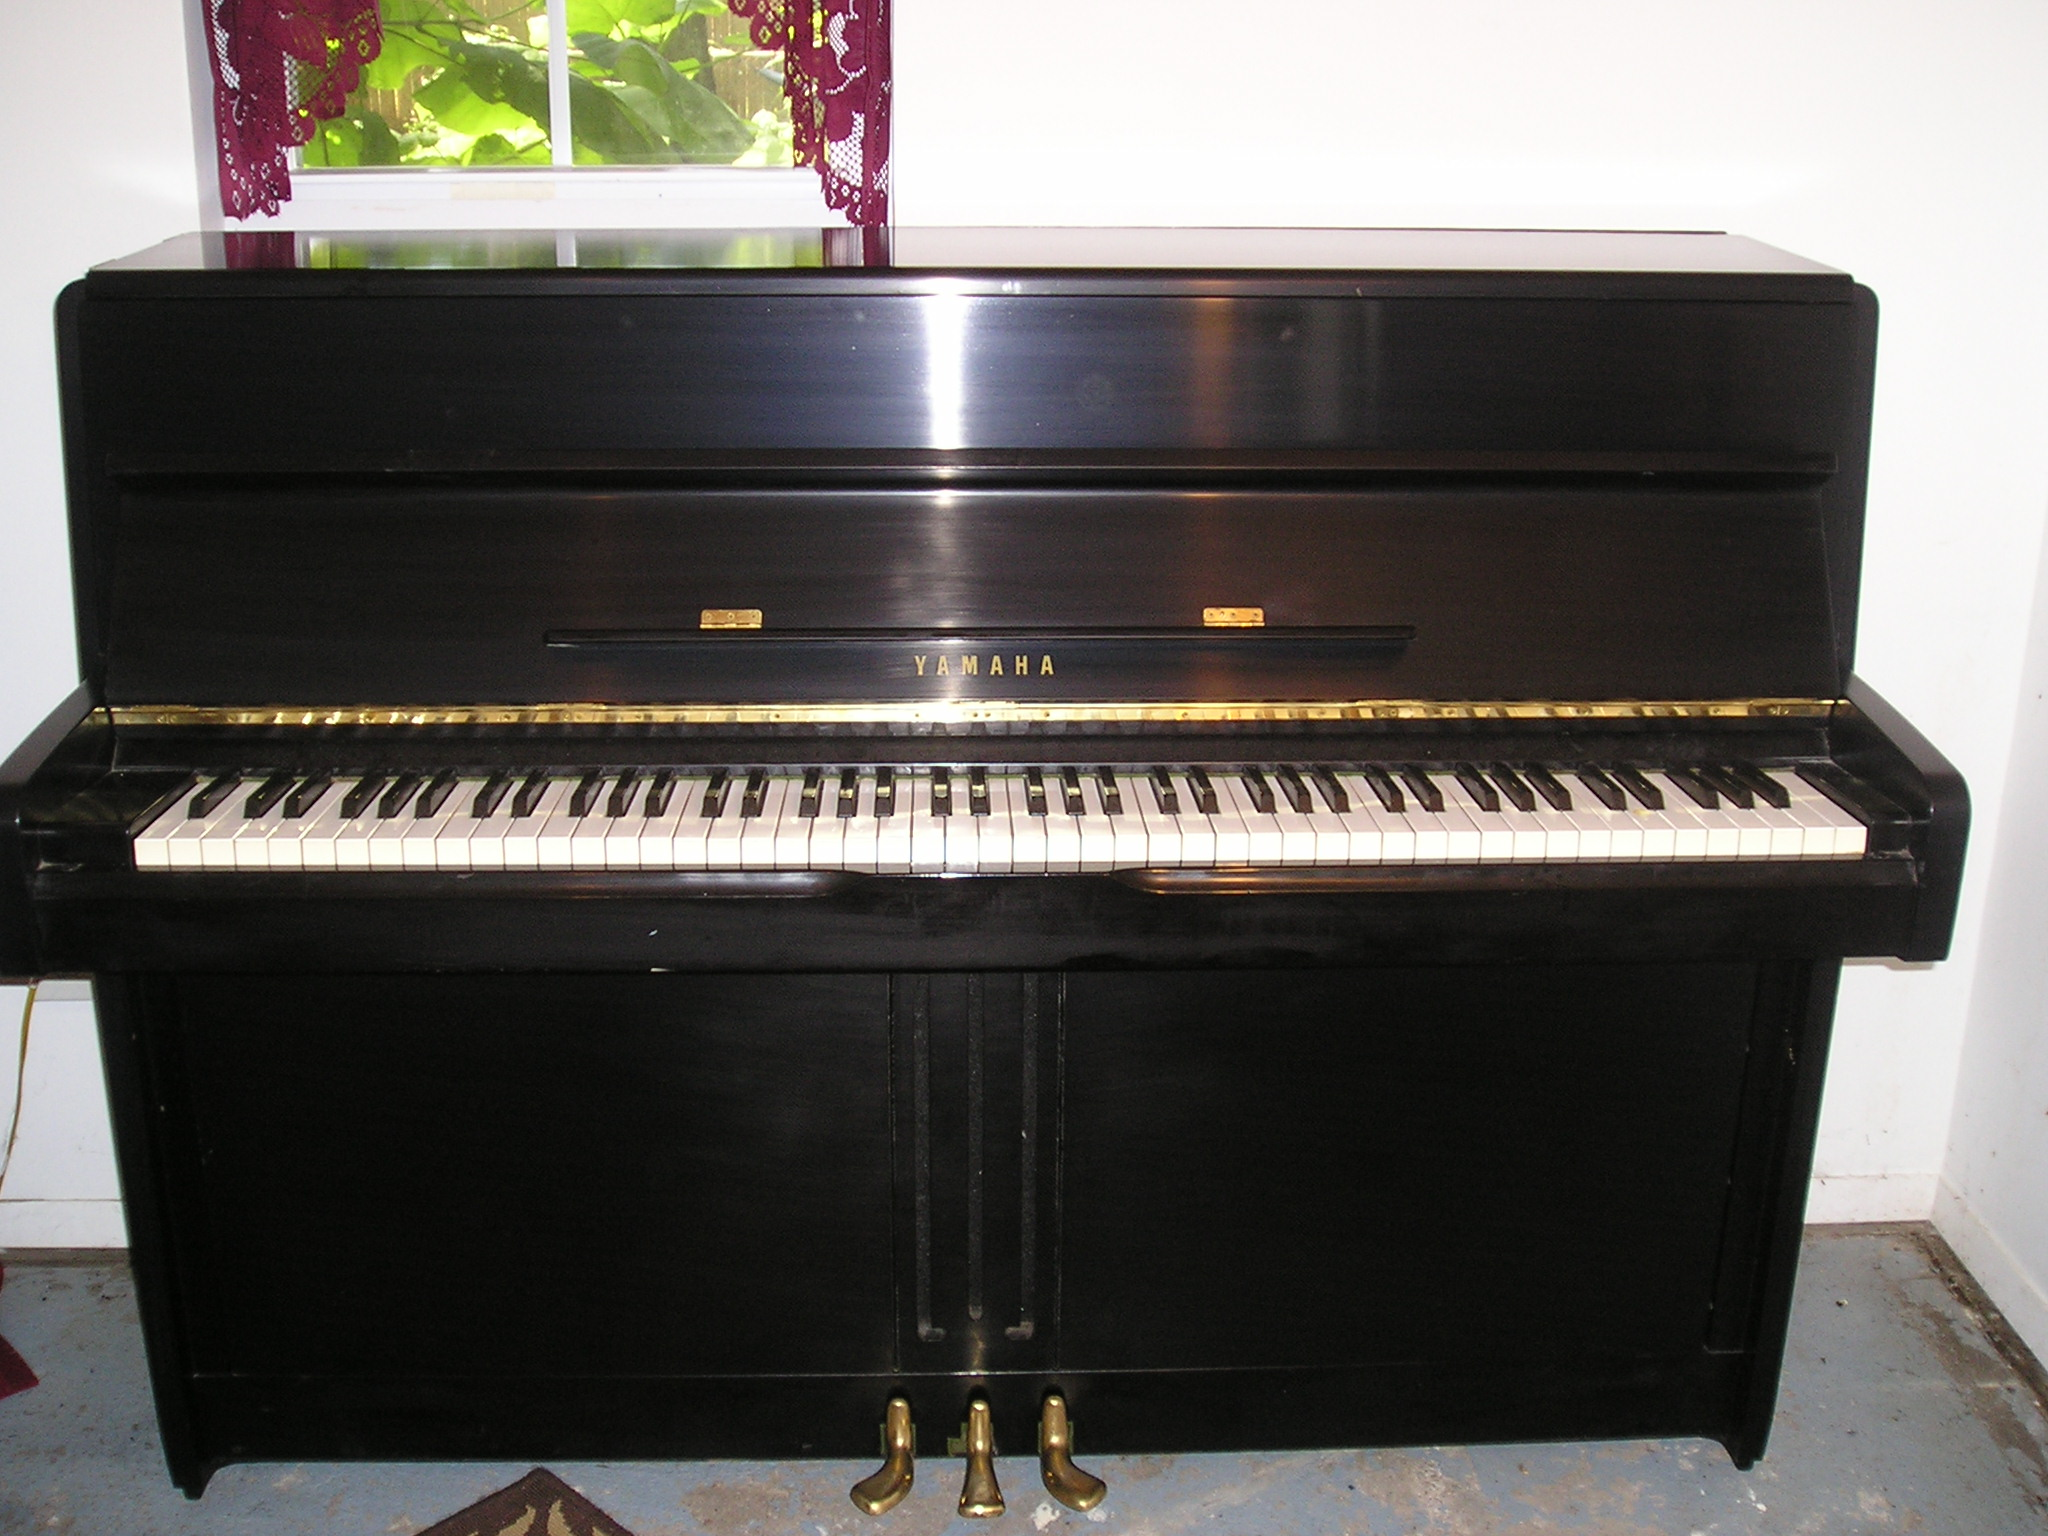 Sonnys piano tv piano gallery used steinways for sale sold yamaha console 42 1978 video - Yamaha console piano models ...